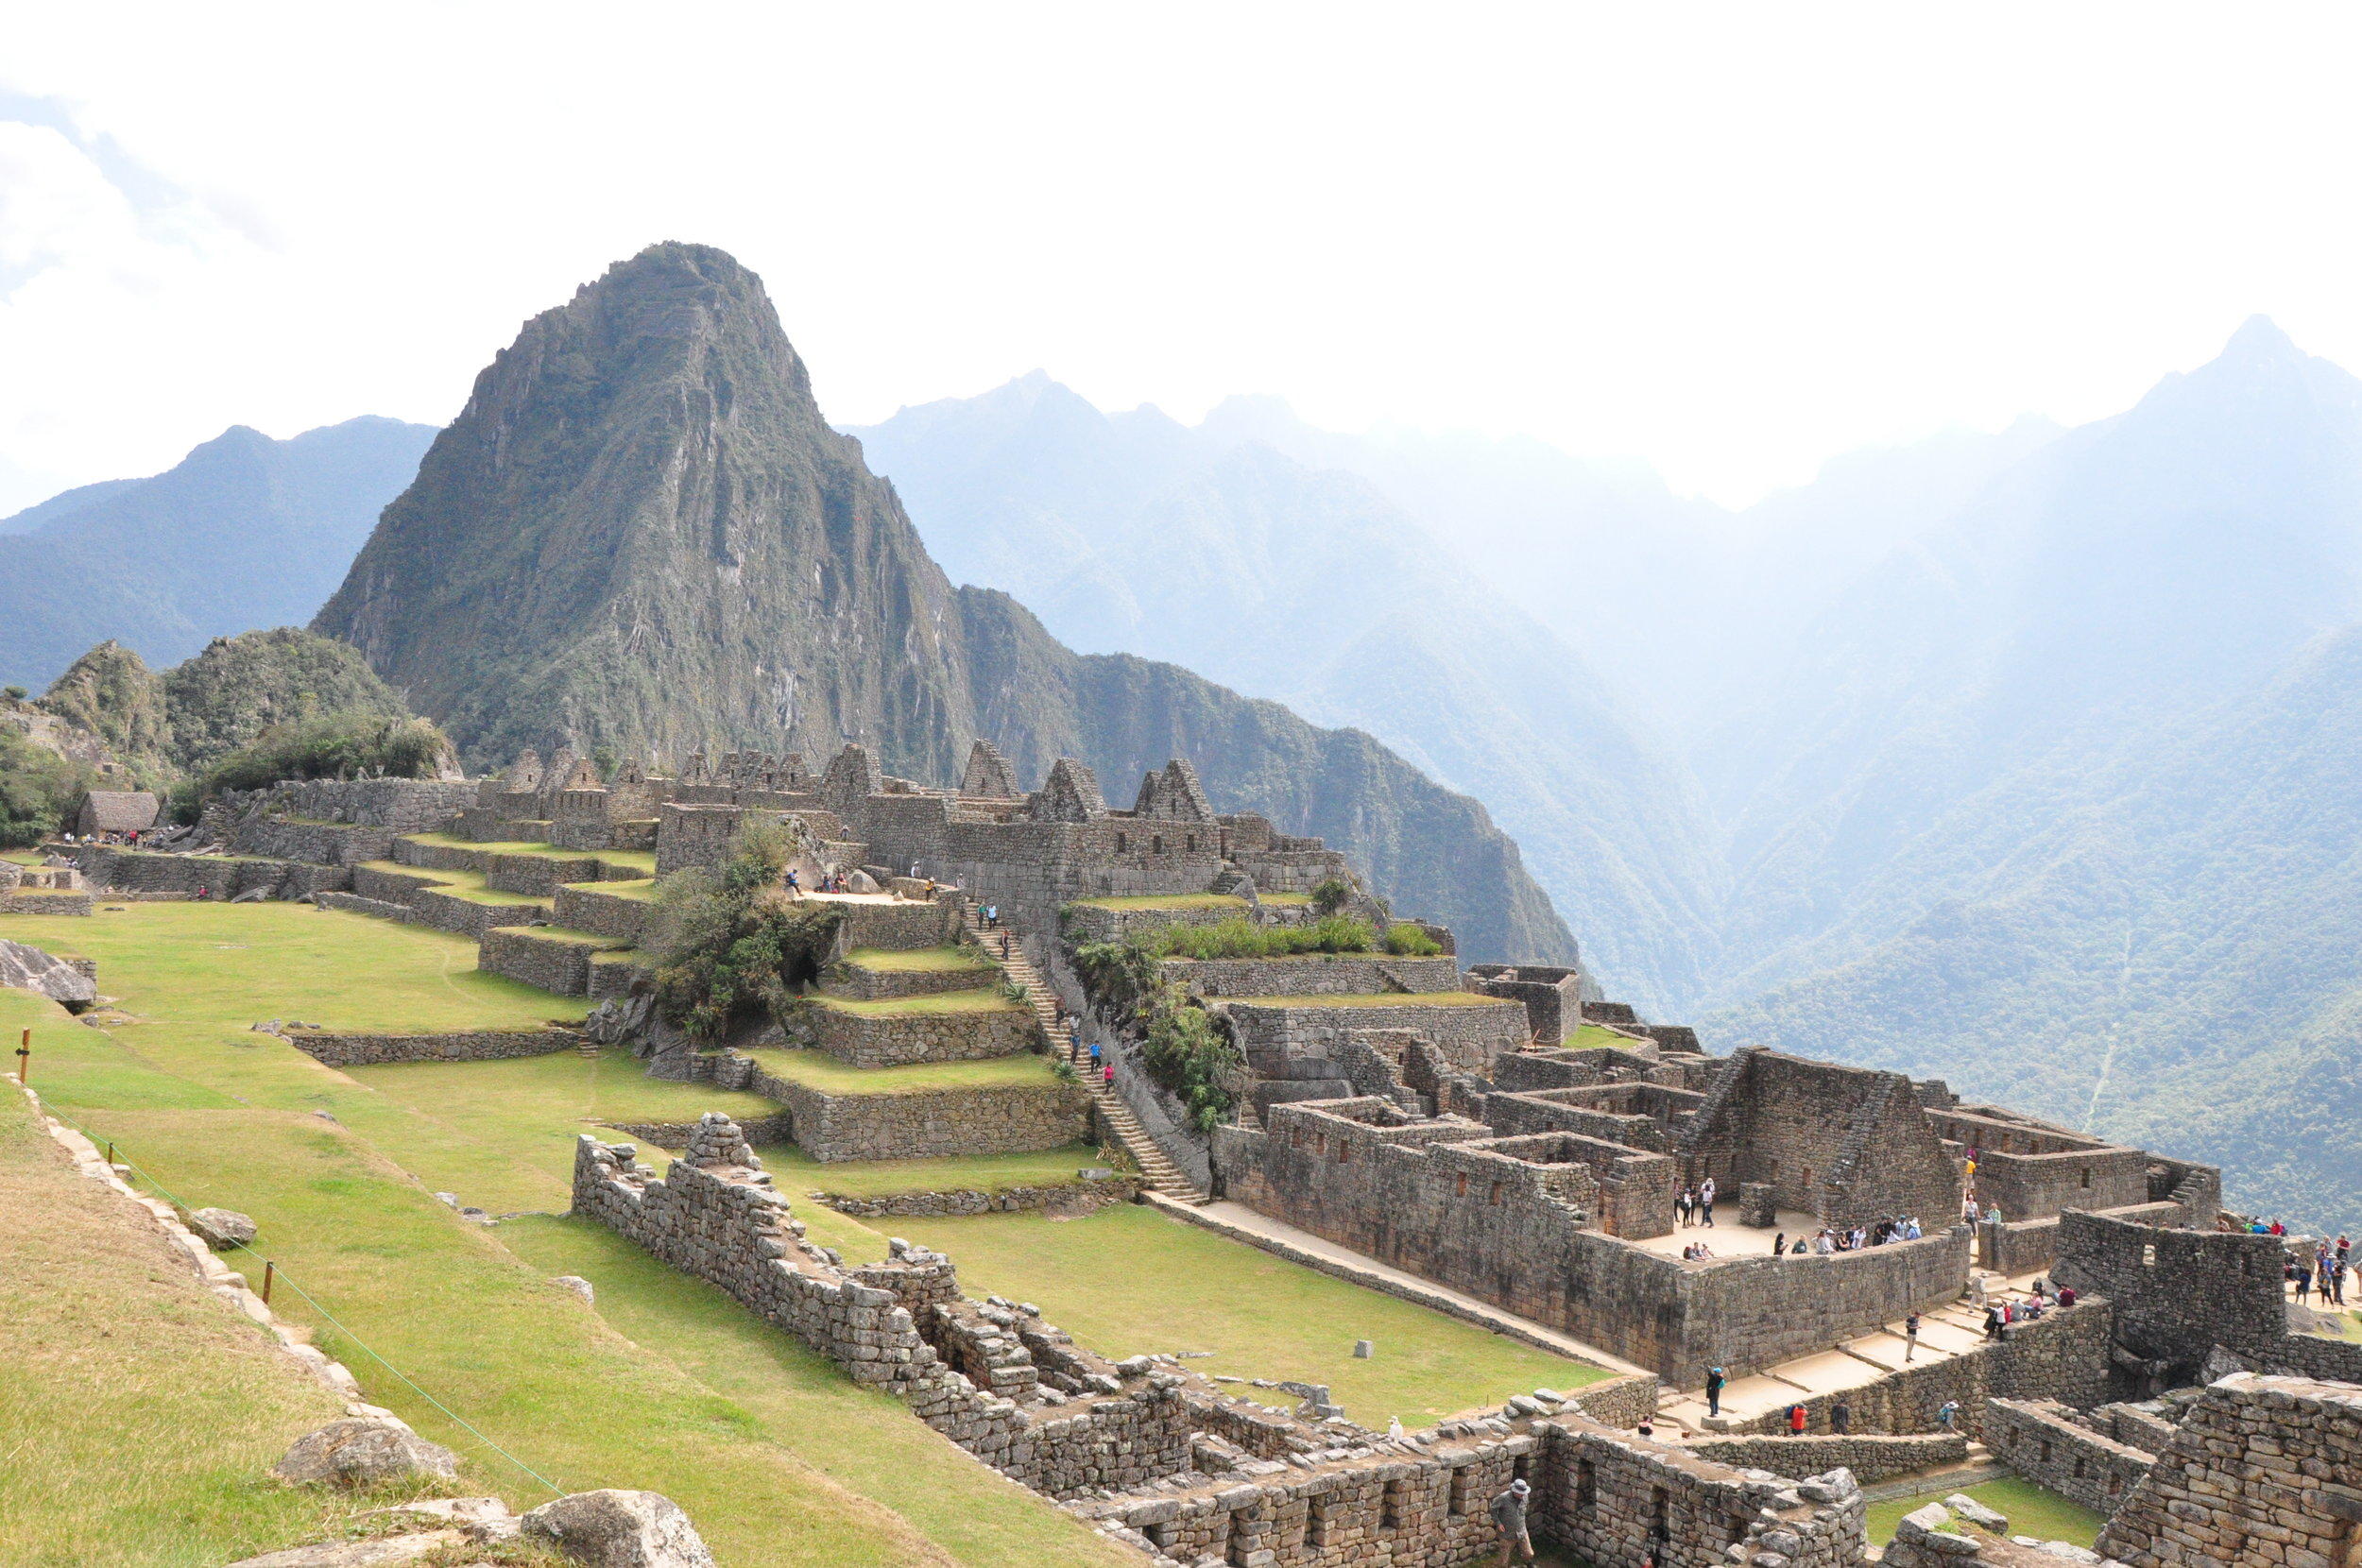 15th century Inca citadel located on a mountain ridge above the Sacred Valley.